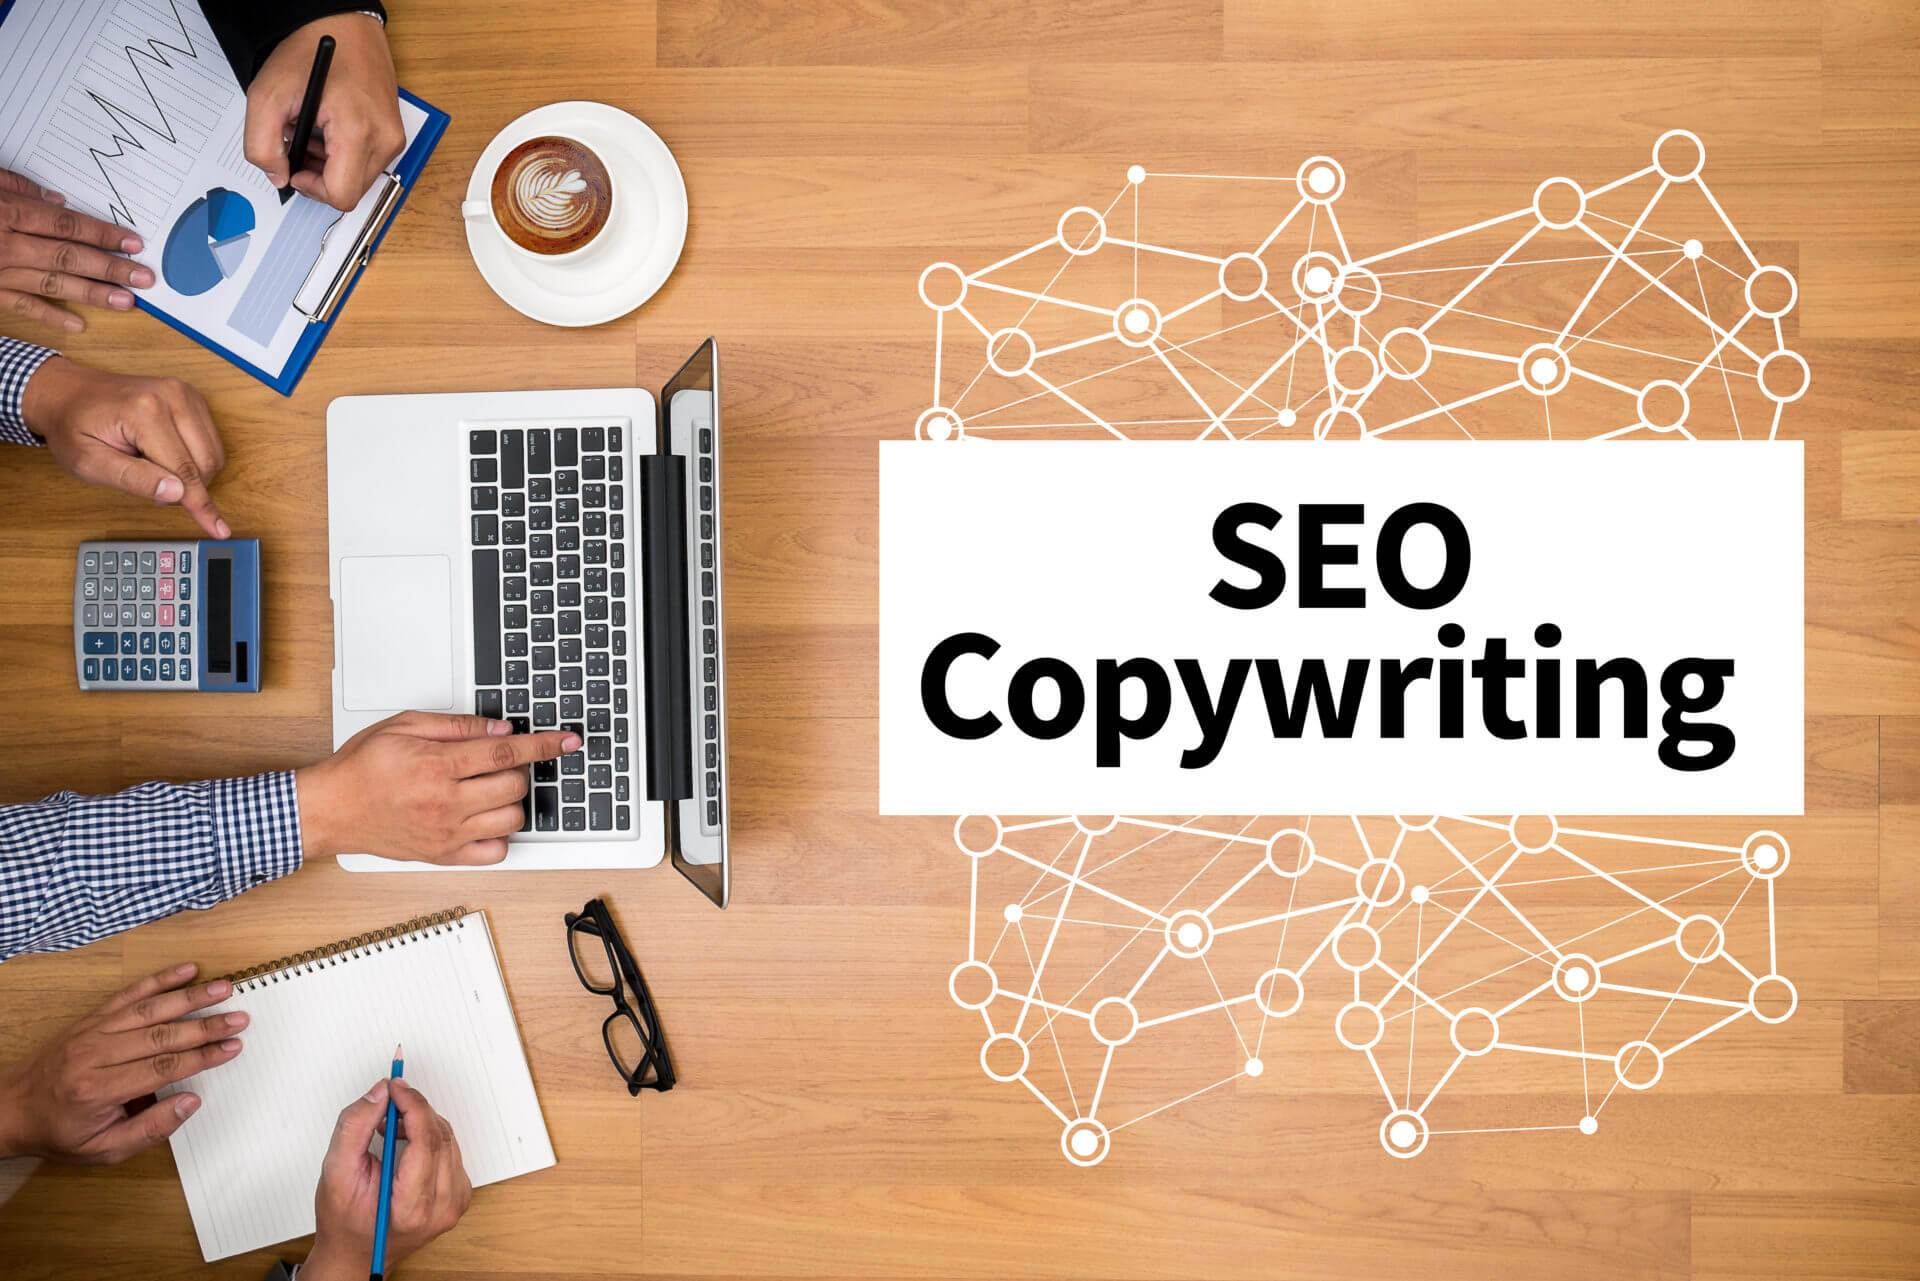 How to find the best copywriter?